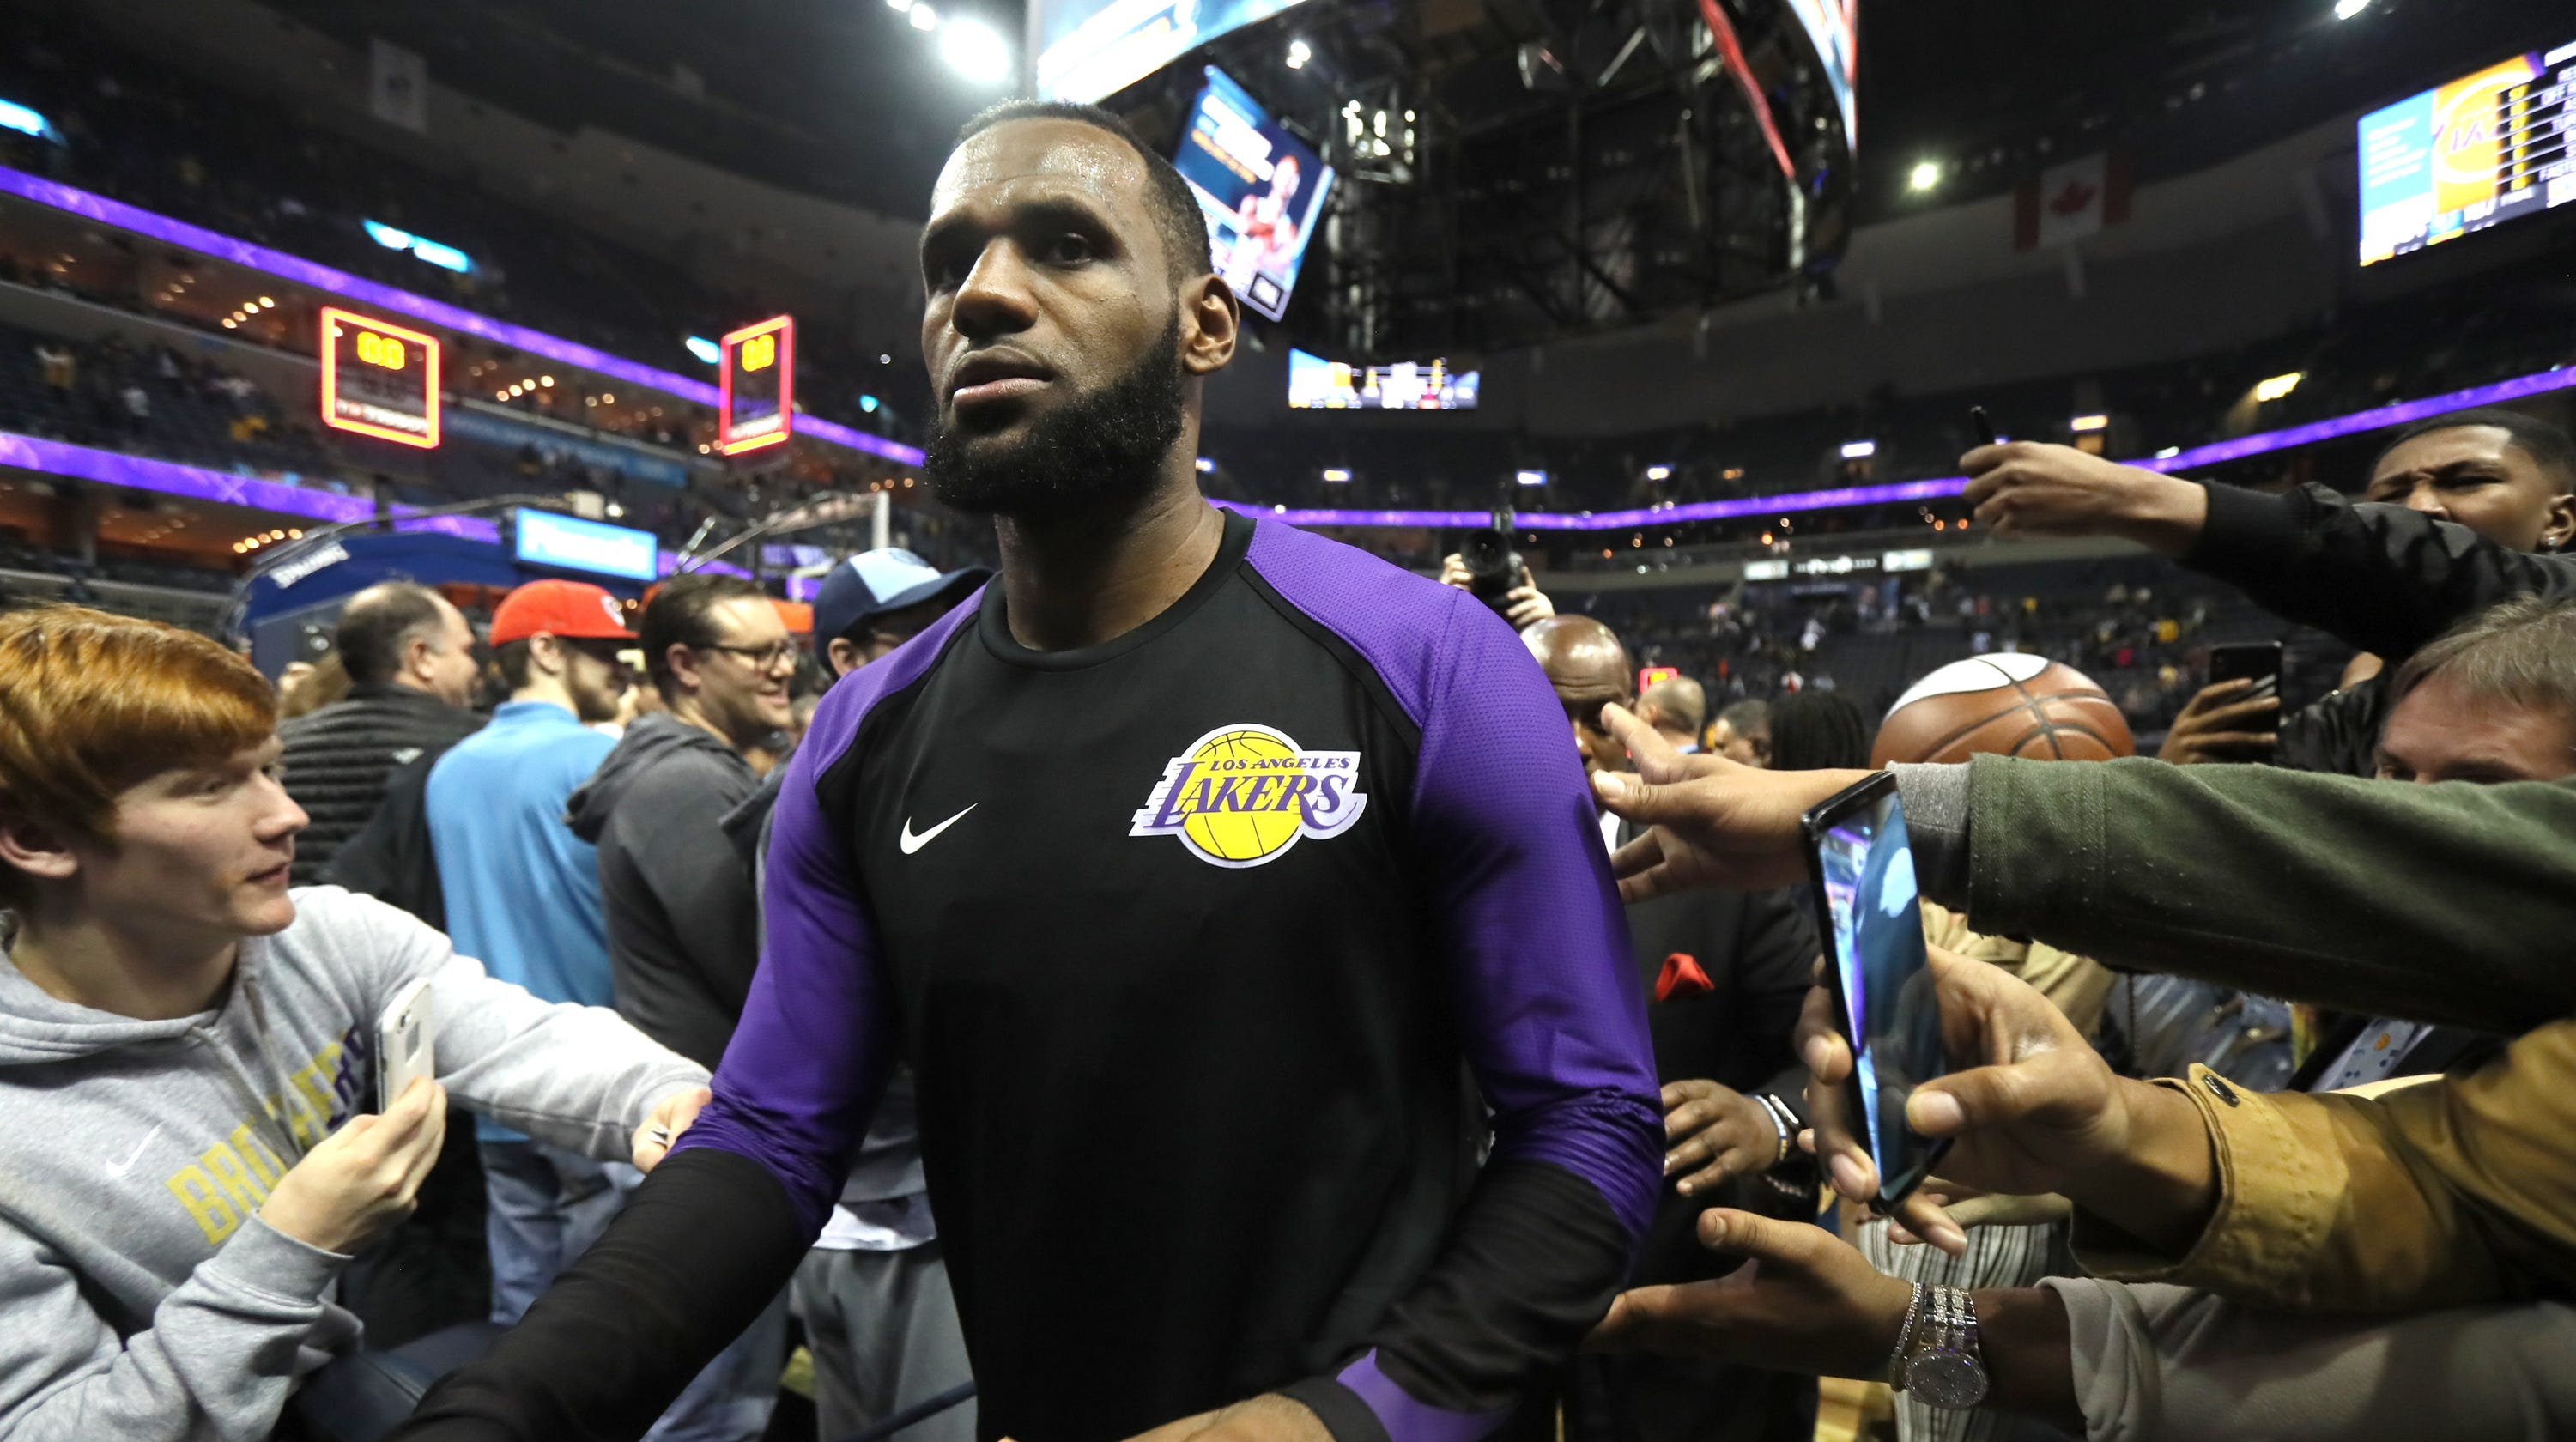 c5a073a345b4 LeBron James gave Memphis his shoes and a show in Lakers  win over Grizzlies